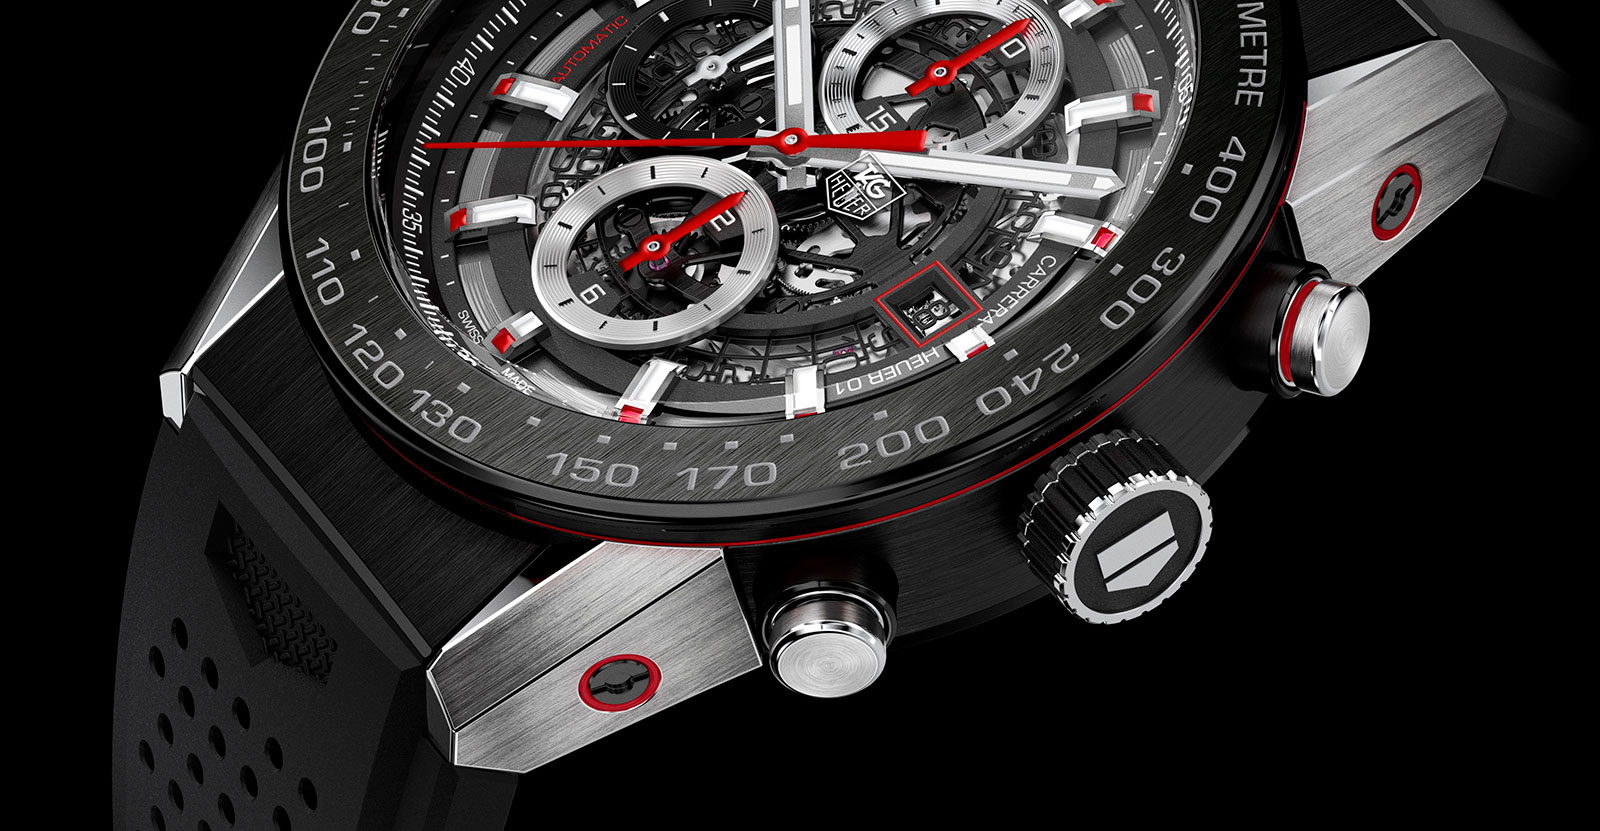 Popular Watches Of Baselworld 2015: TAG Heuer